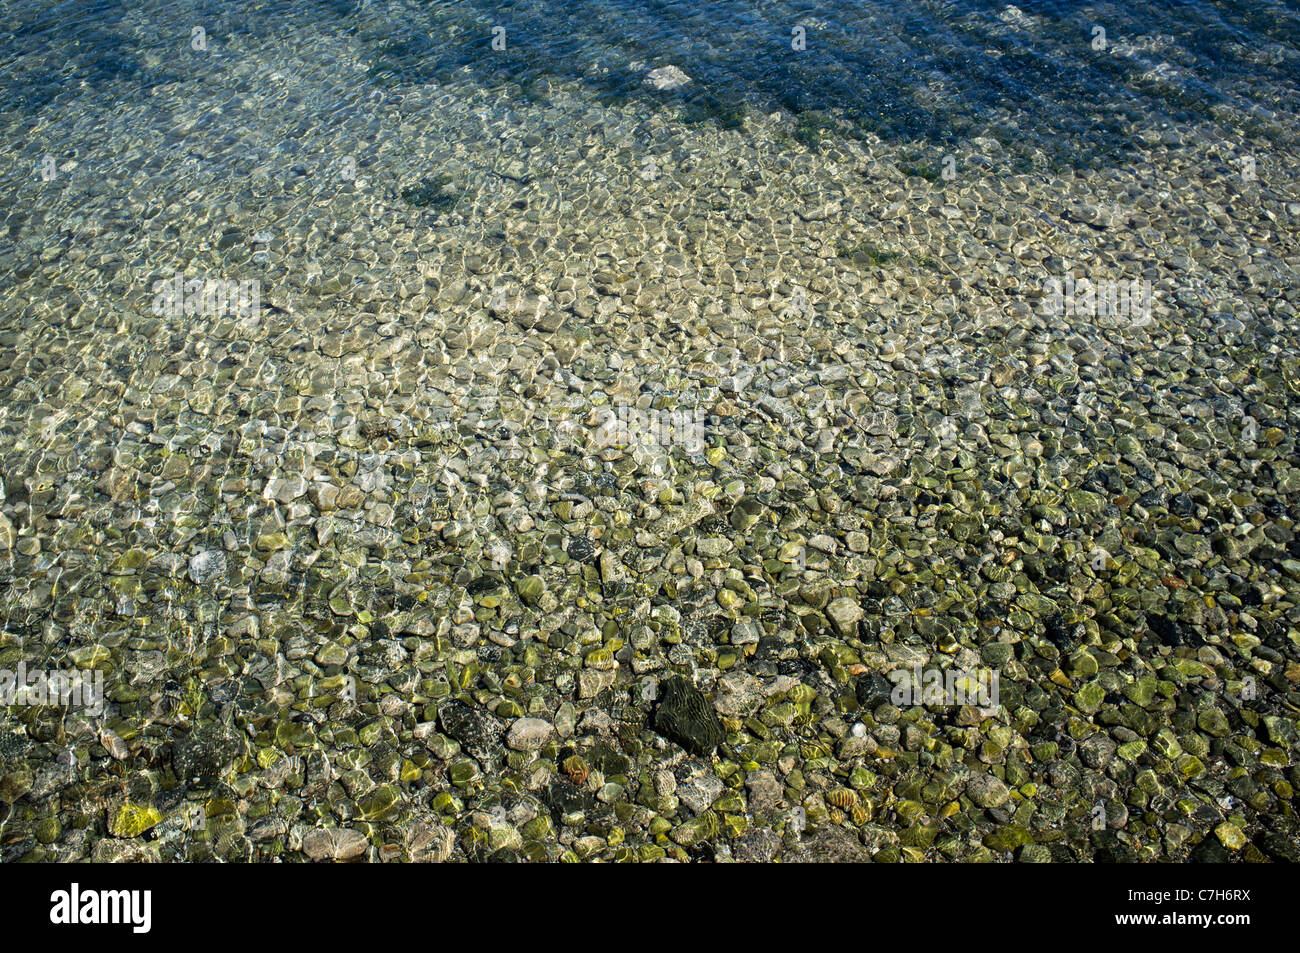 Large pebbles under the water in the Bay of Mirabello on the  Greek island of Crete - Stock Image